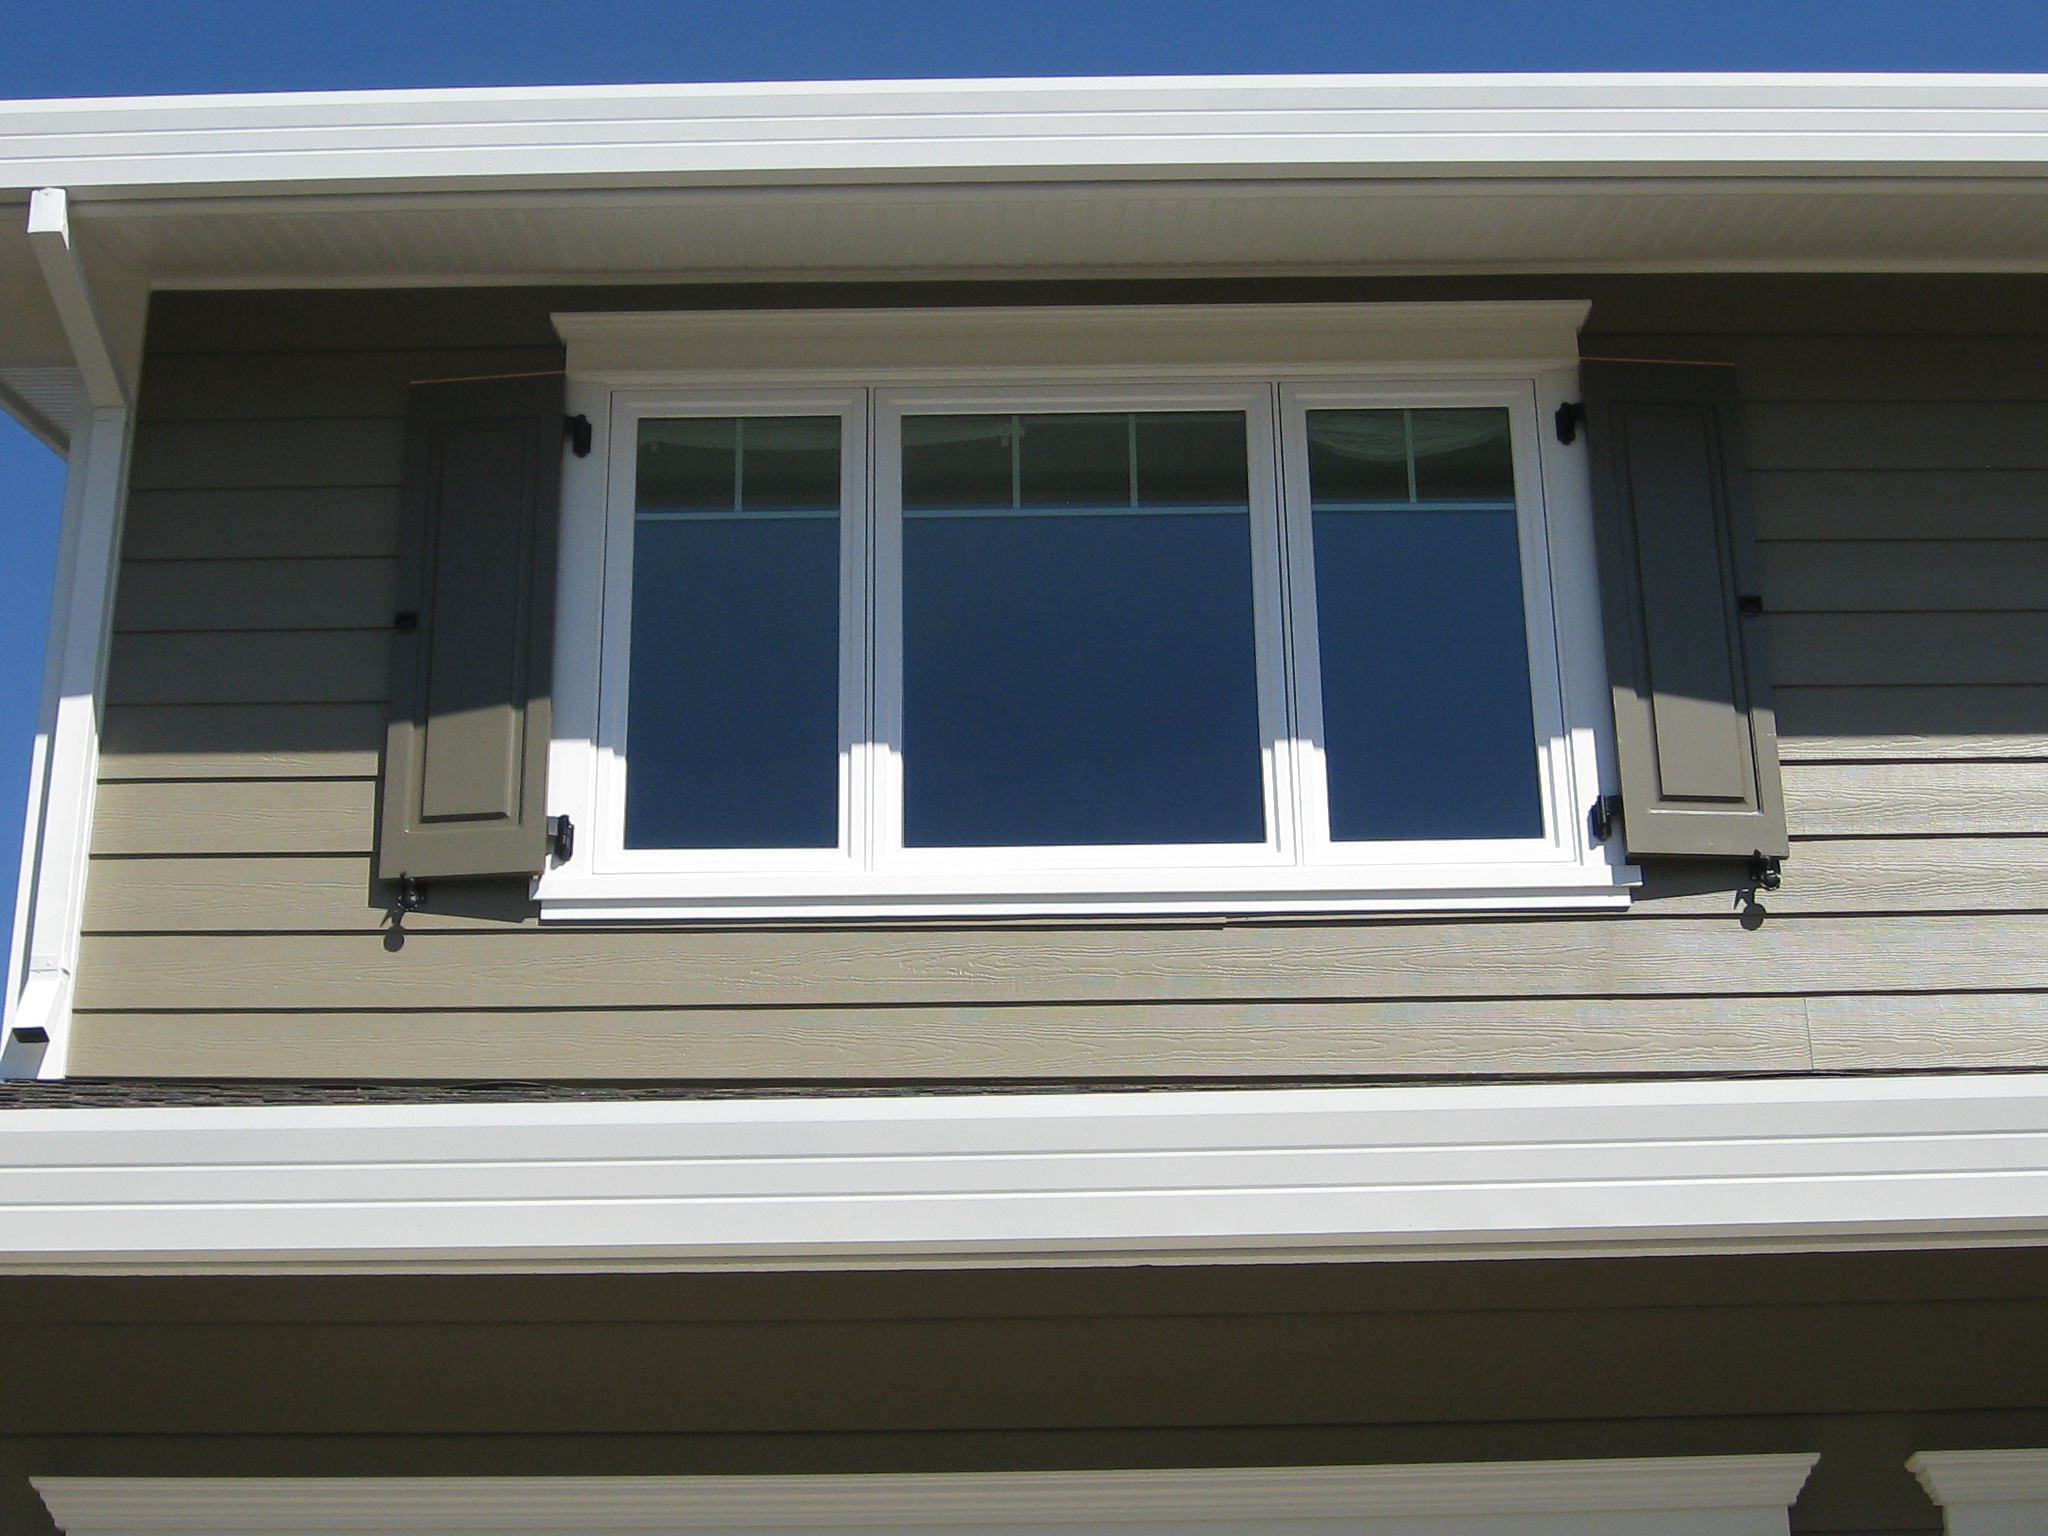 Adorable cool amazing nice wonderful fantastic nice outdoor window trim with triple window design concept wooden